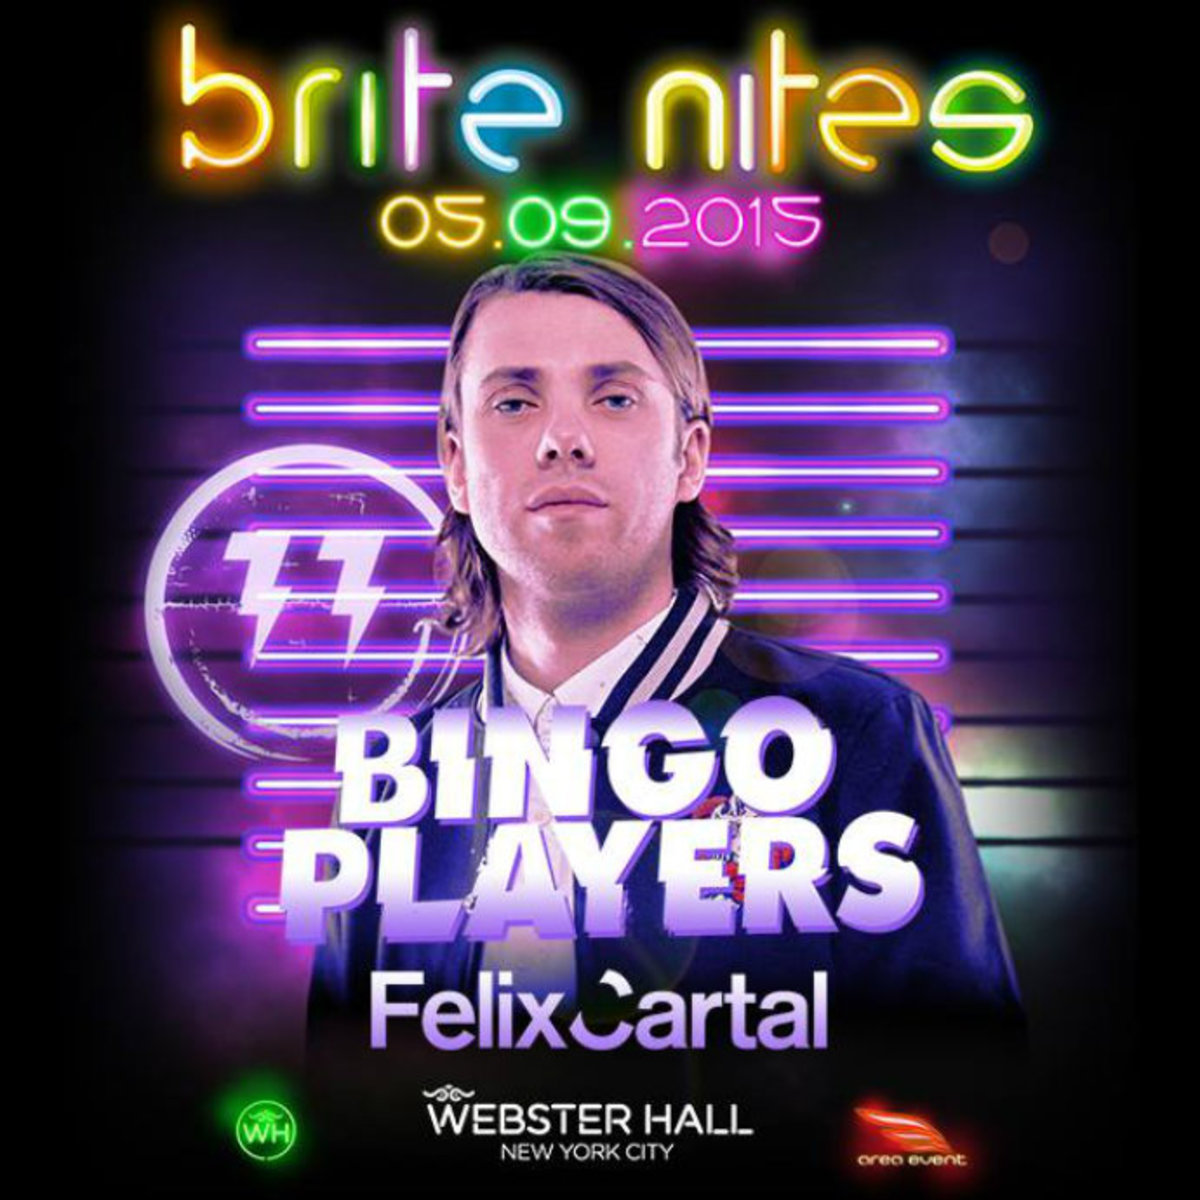 Lookas, Torro Torro, Bingo Players, And Felix Cartal At Webster Hall (5/8 - 5/9)